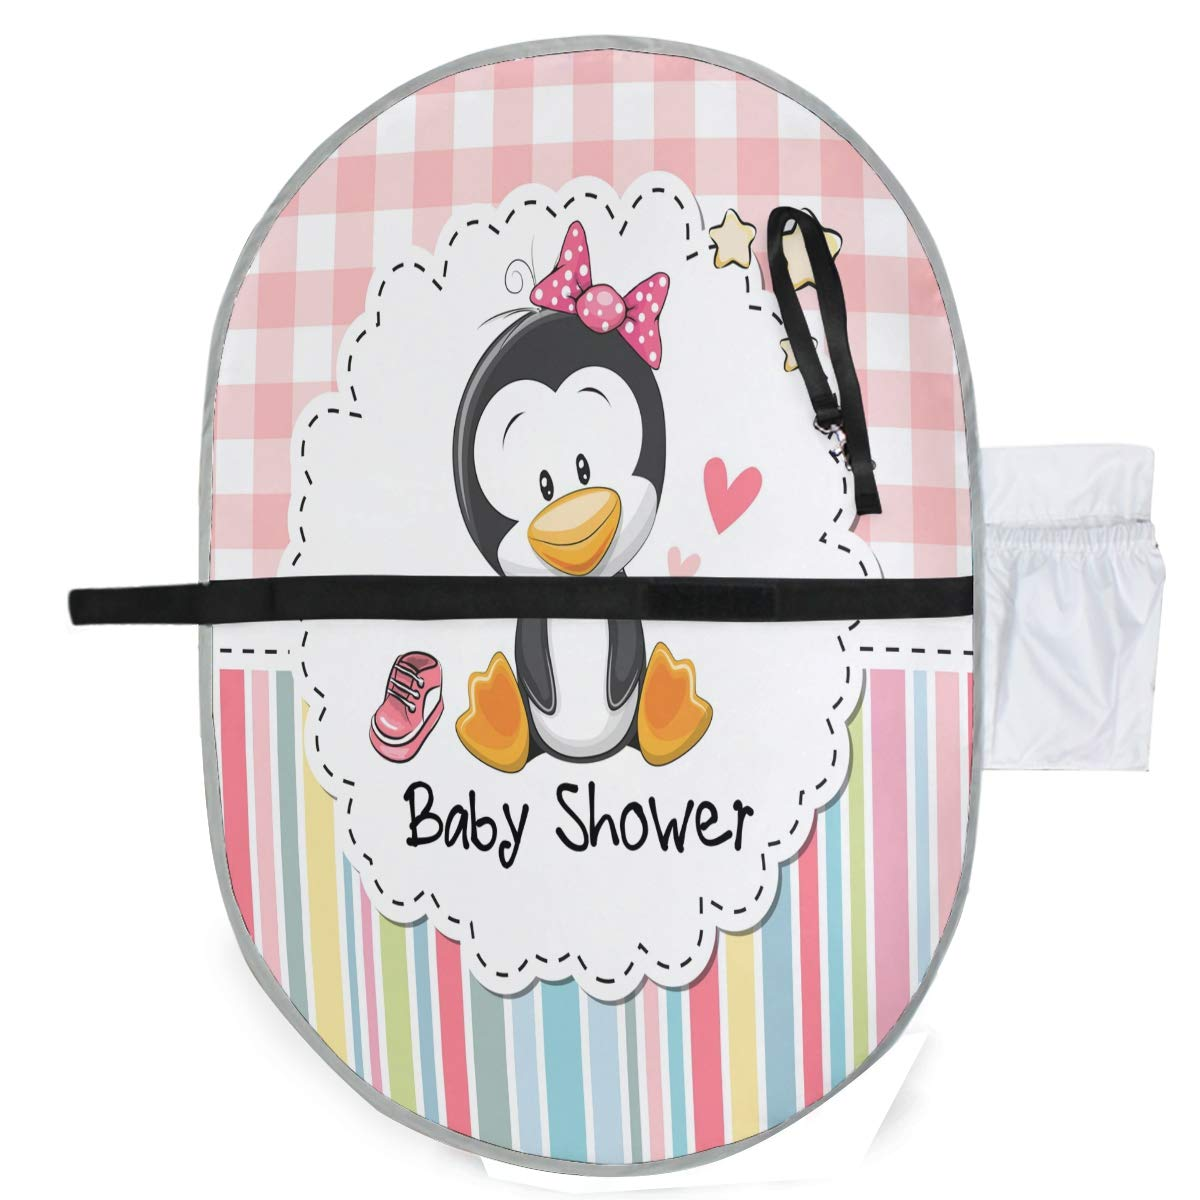 ZZXXB Penguin Shower Baby Portable Changing Pad Waterproof Diaper Change Mat Large for Infant Quick Change